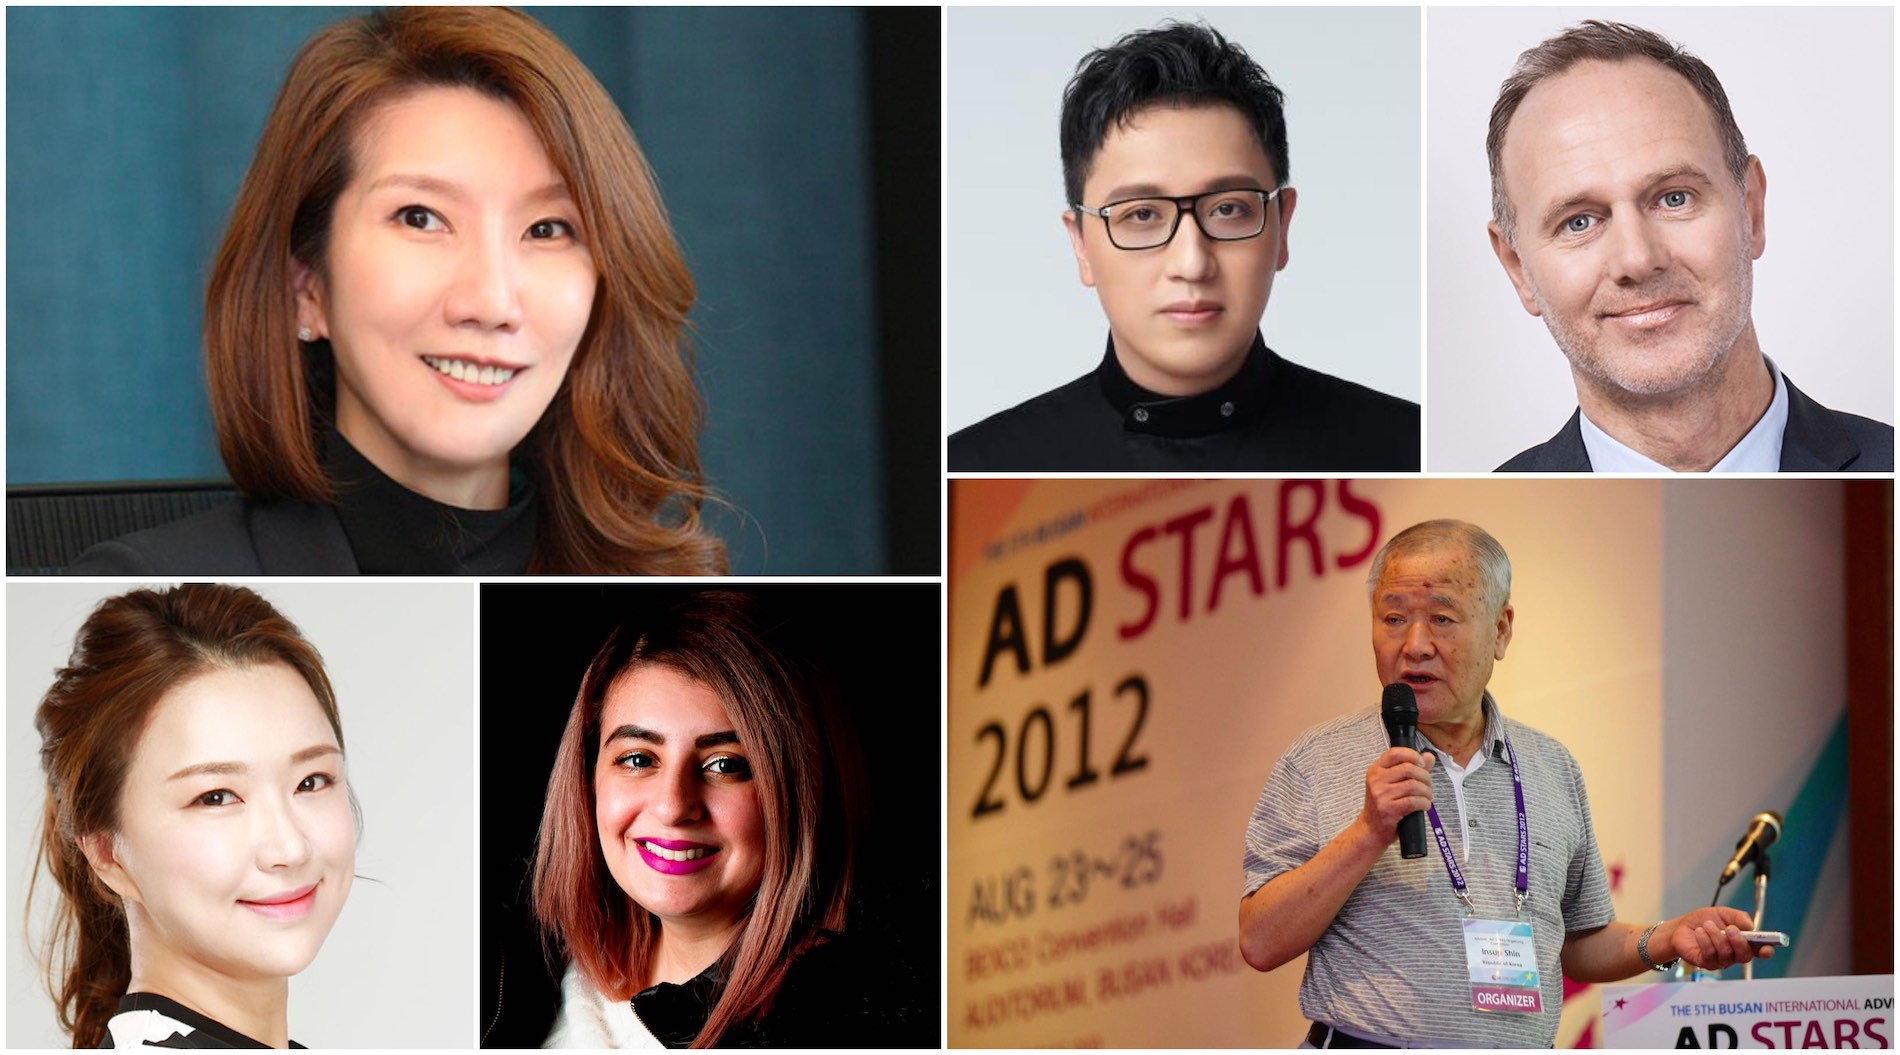 Ad Stars 2020 reveals free online program kicking off next week from 22-23 October